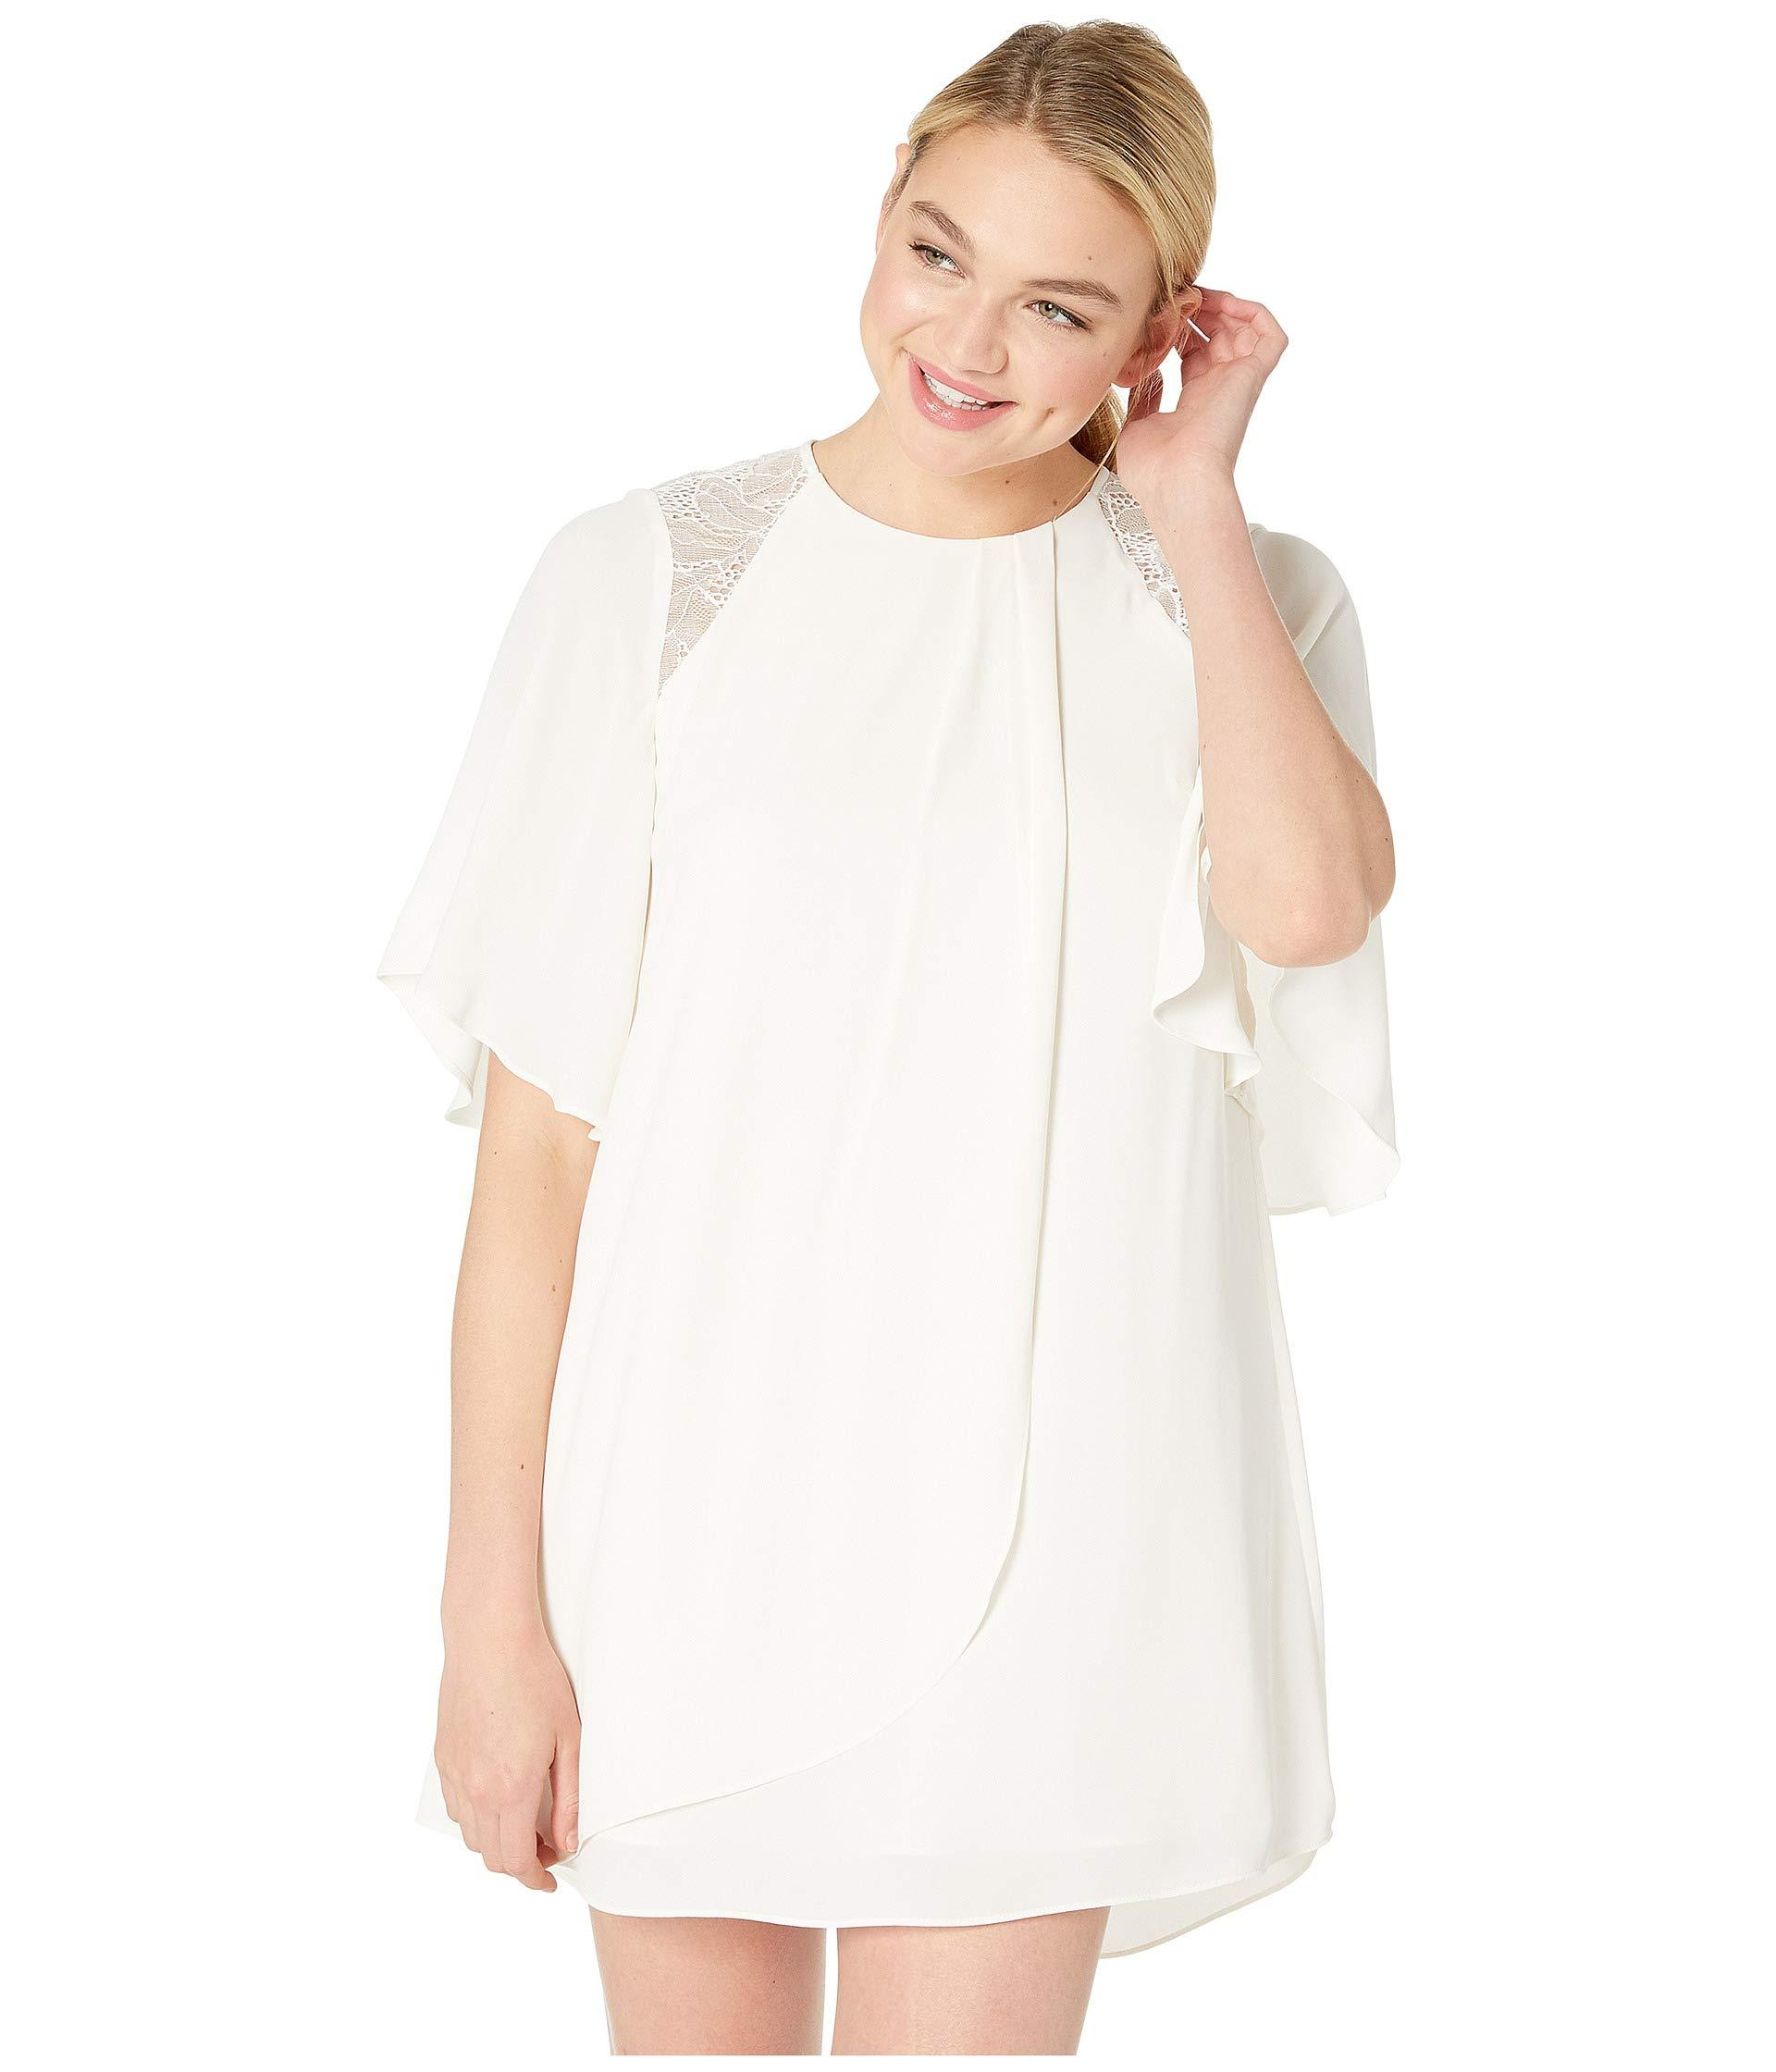 a0750afb7342 Halston Flowy Short Sleeve High Neck Dress With Lace (cream 2 ...